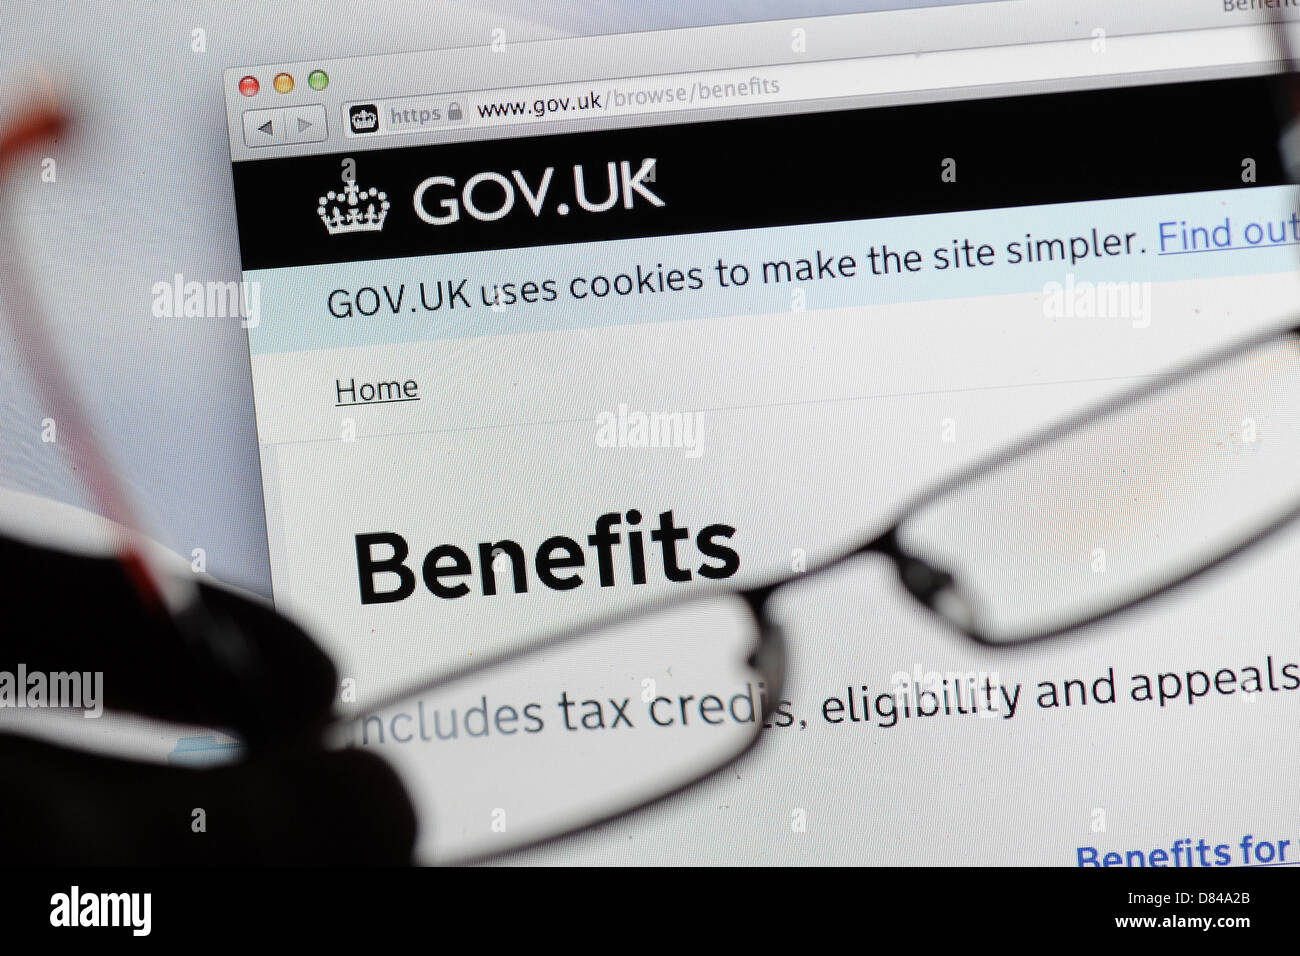 UK benefits website gov.uk Stock Photo